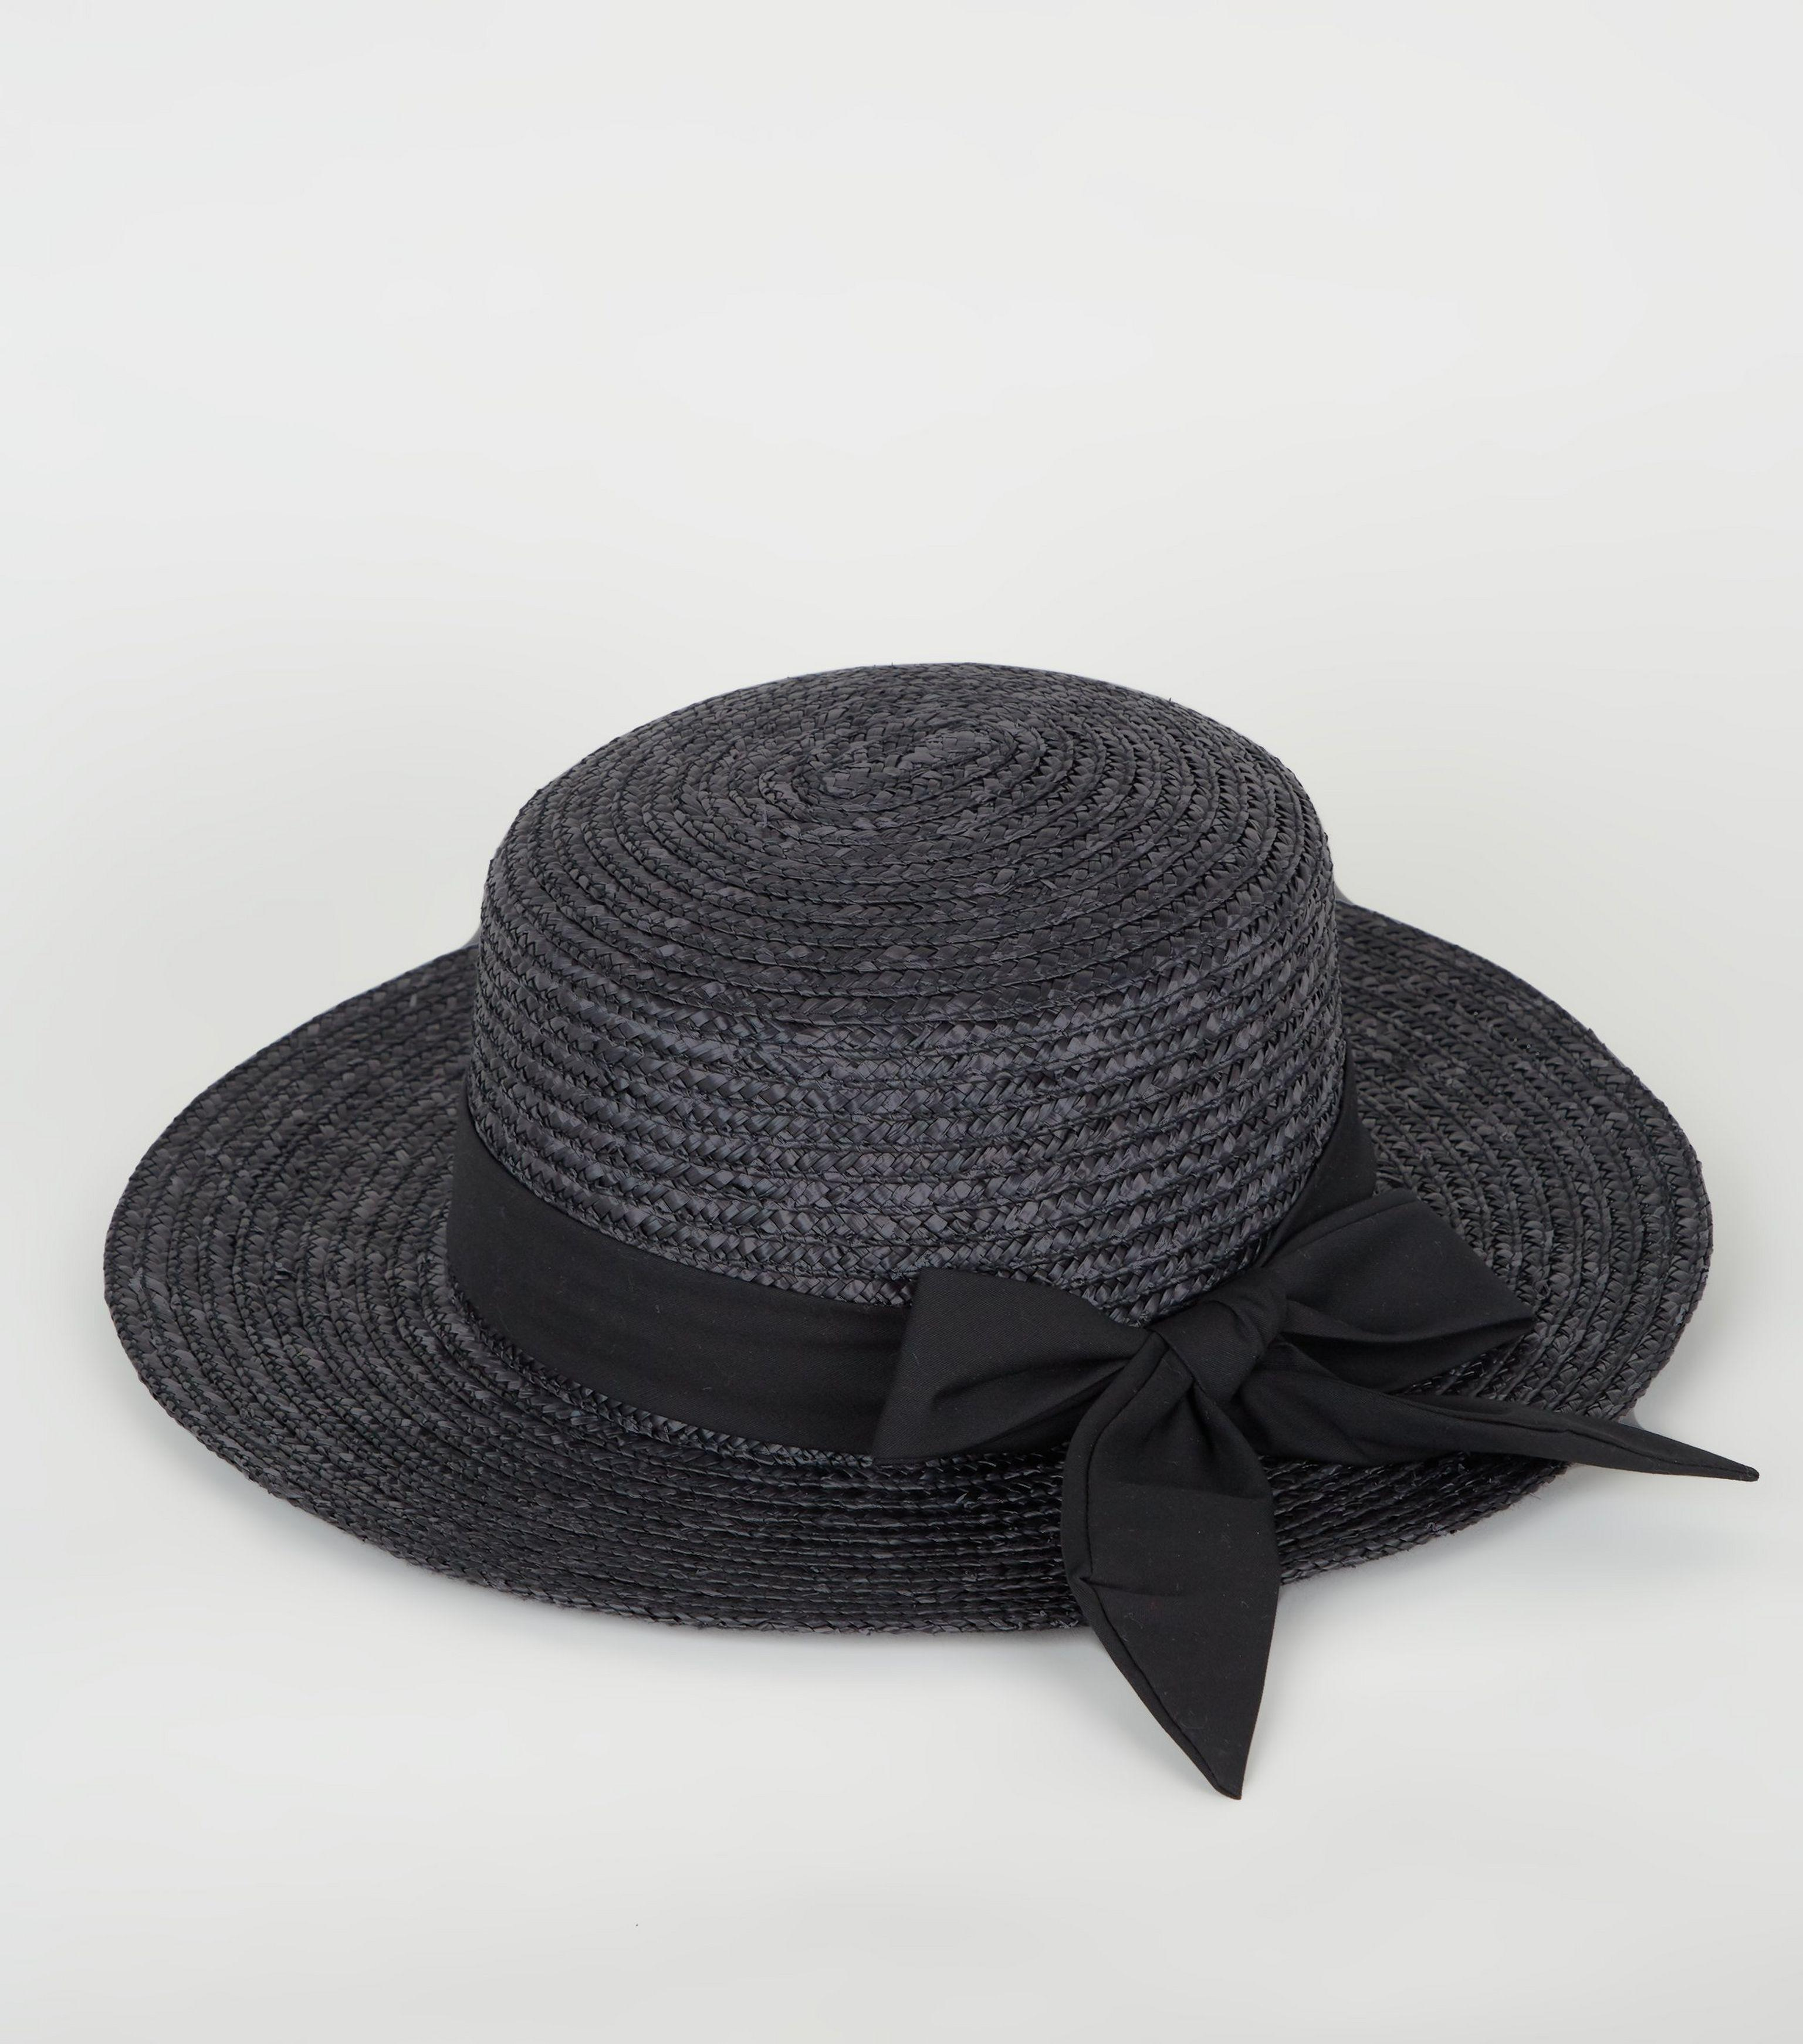 fa2f250c New Look Black Woven Straw Effect Boater Hat in Black - Lyst